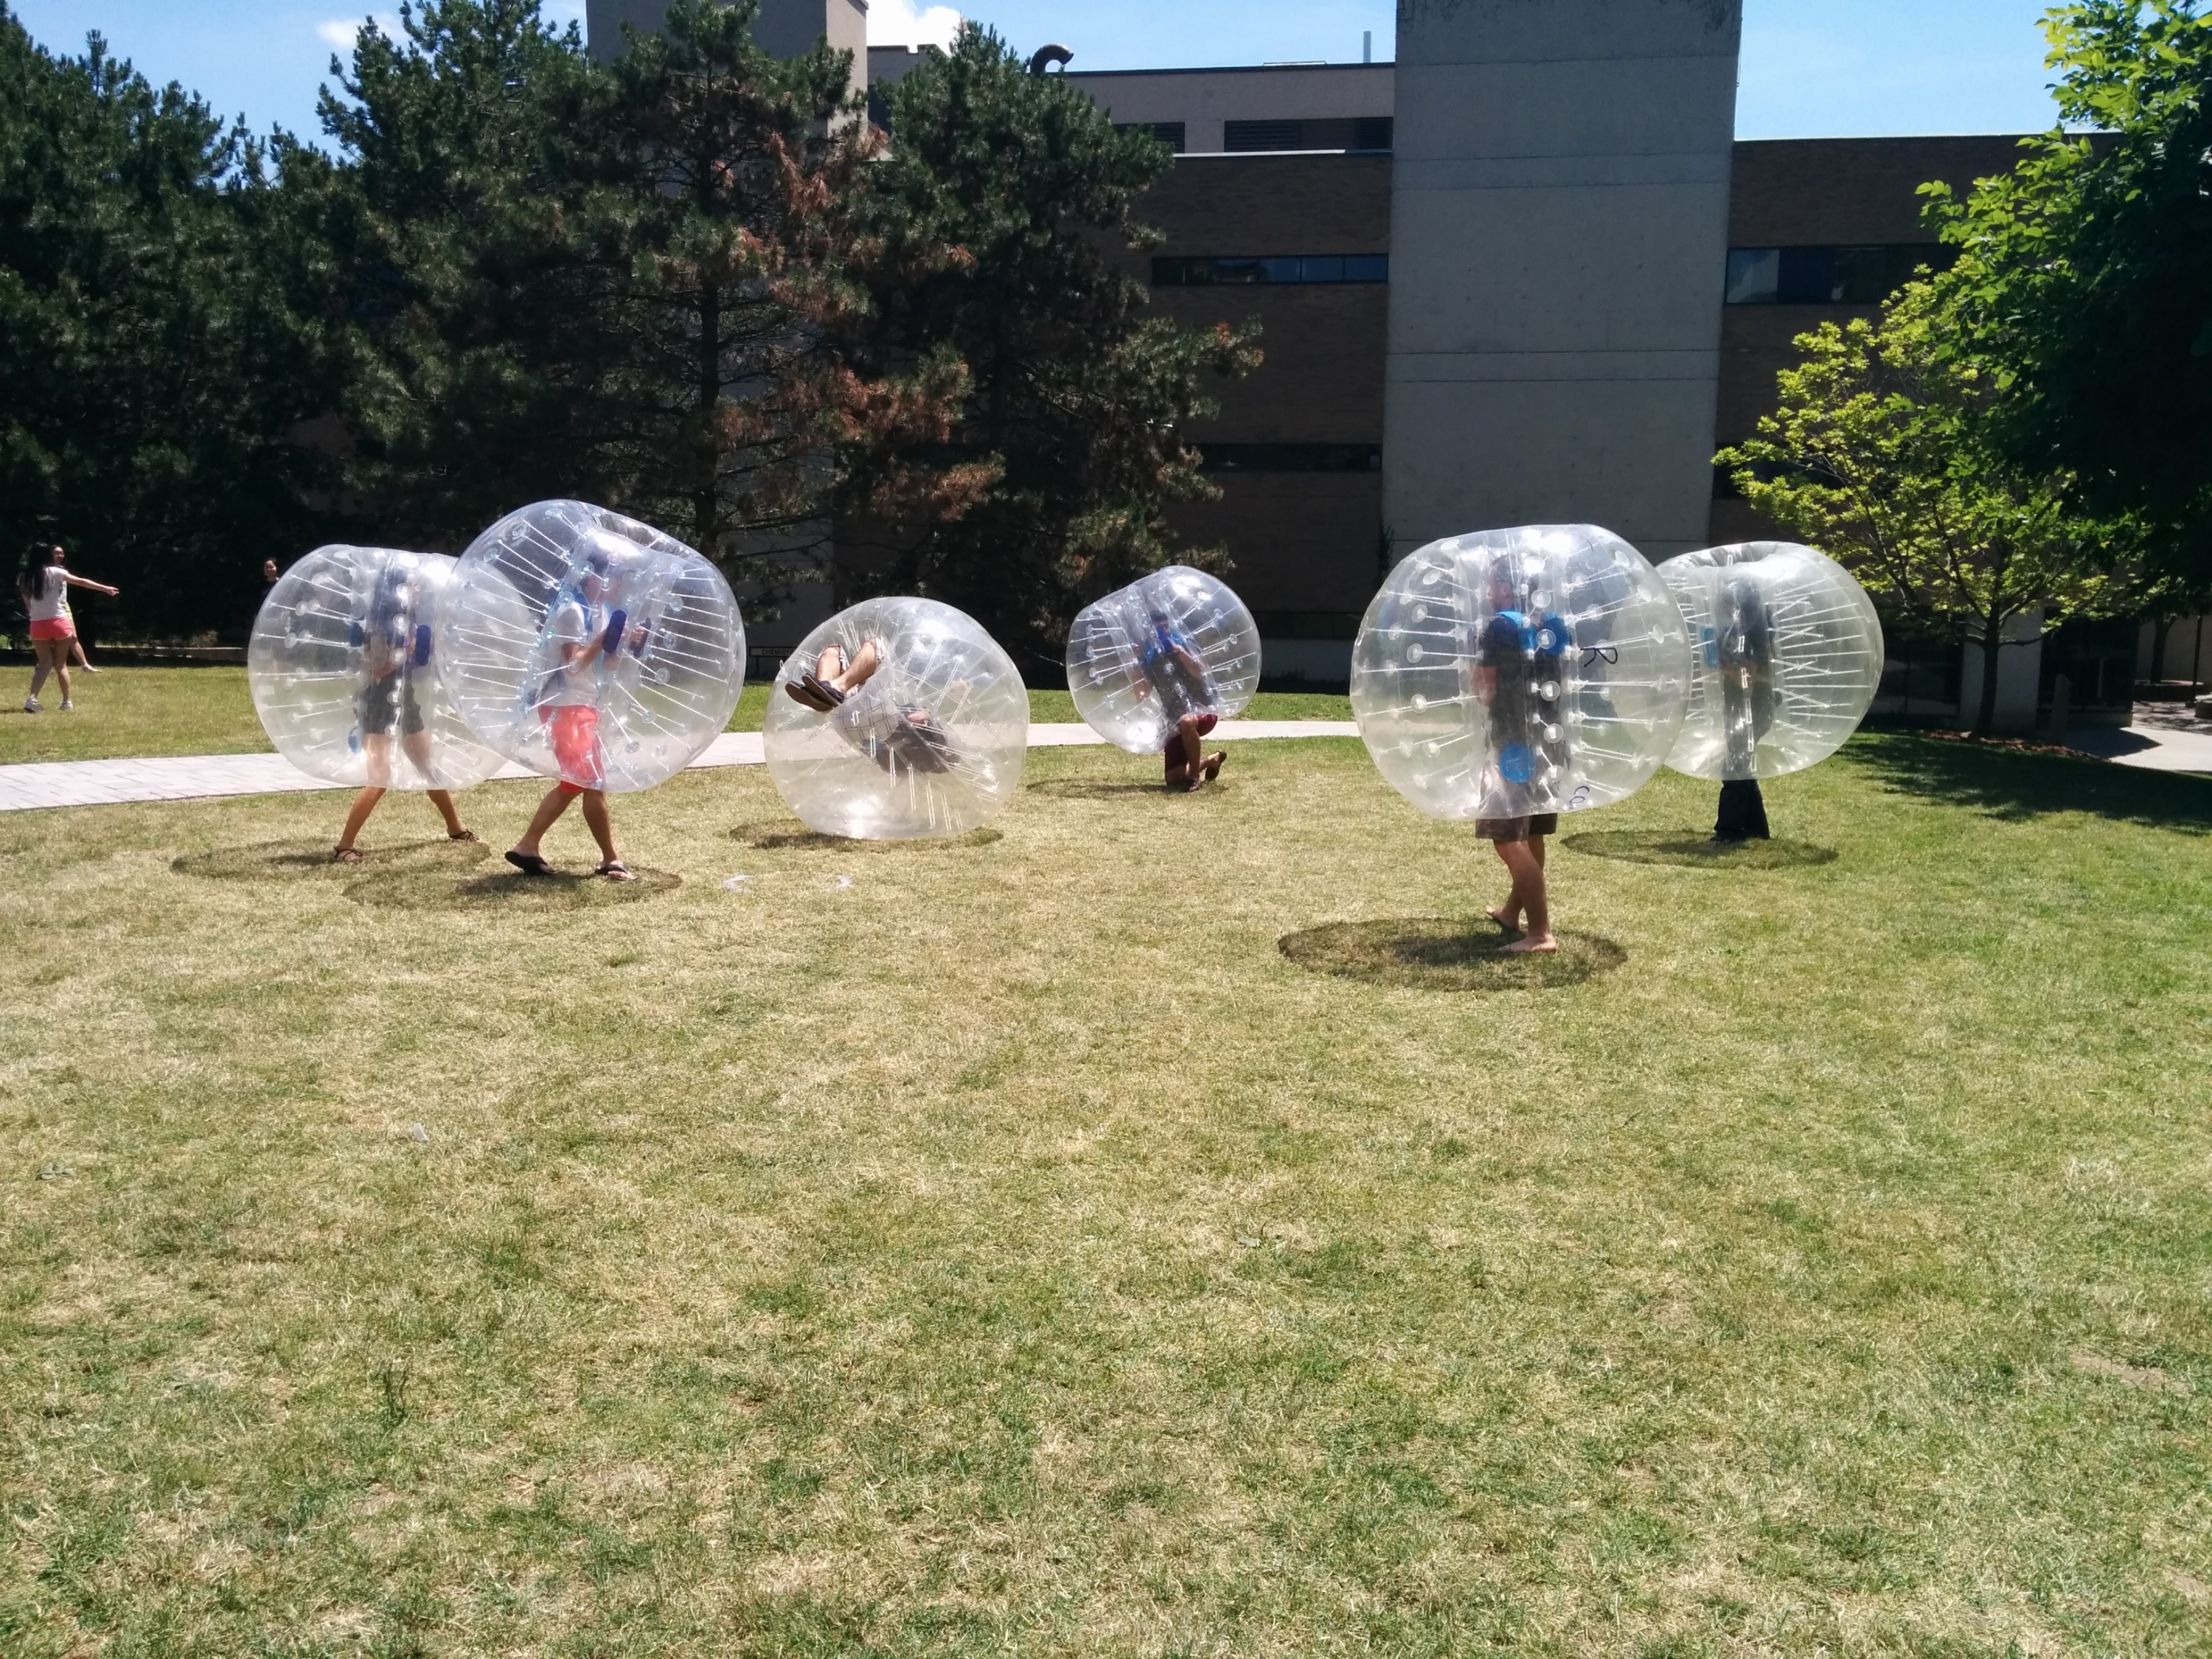 Bubble soccer players on campus